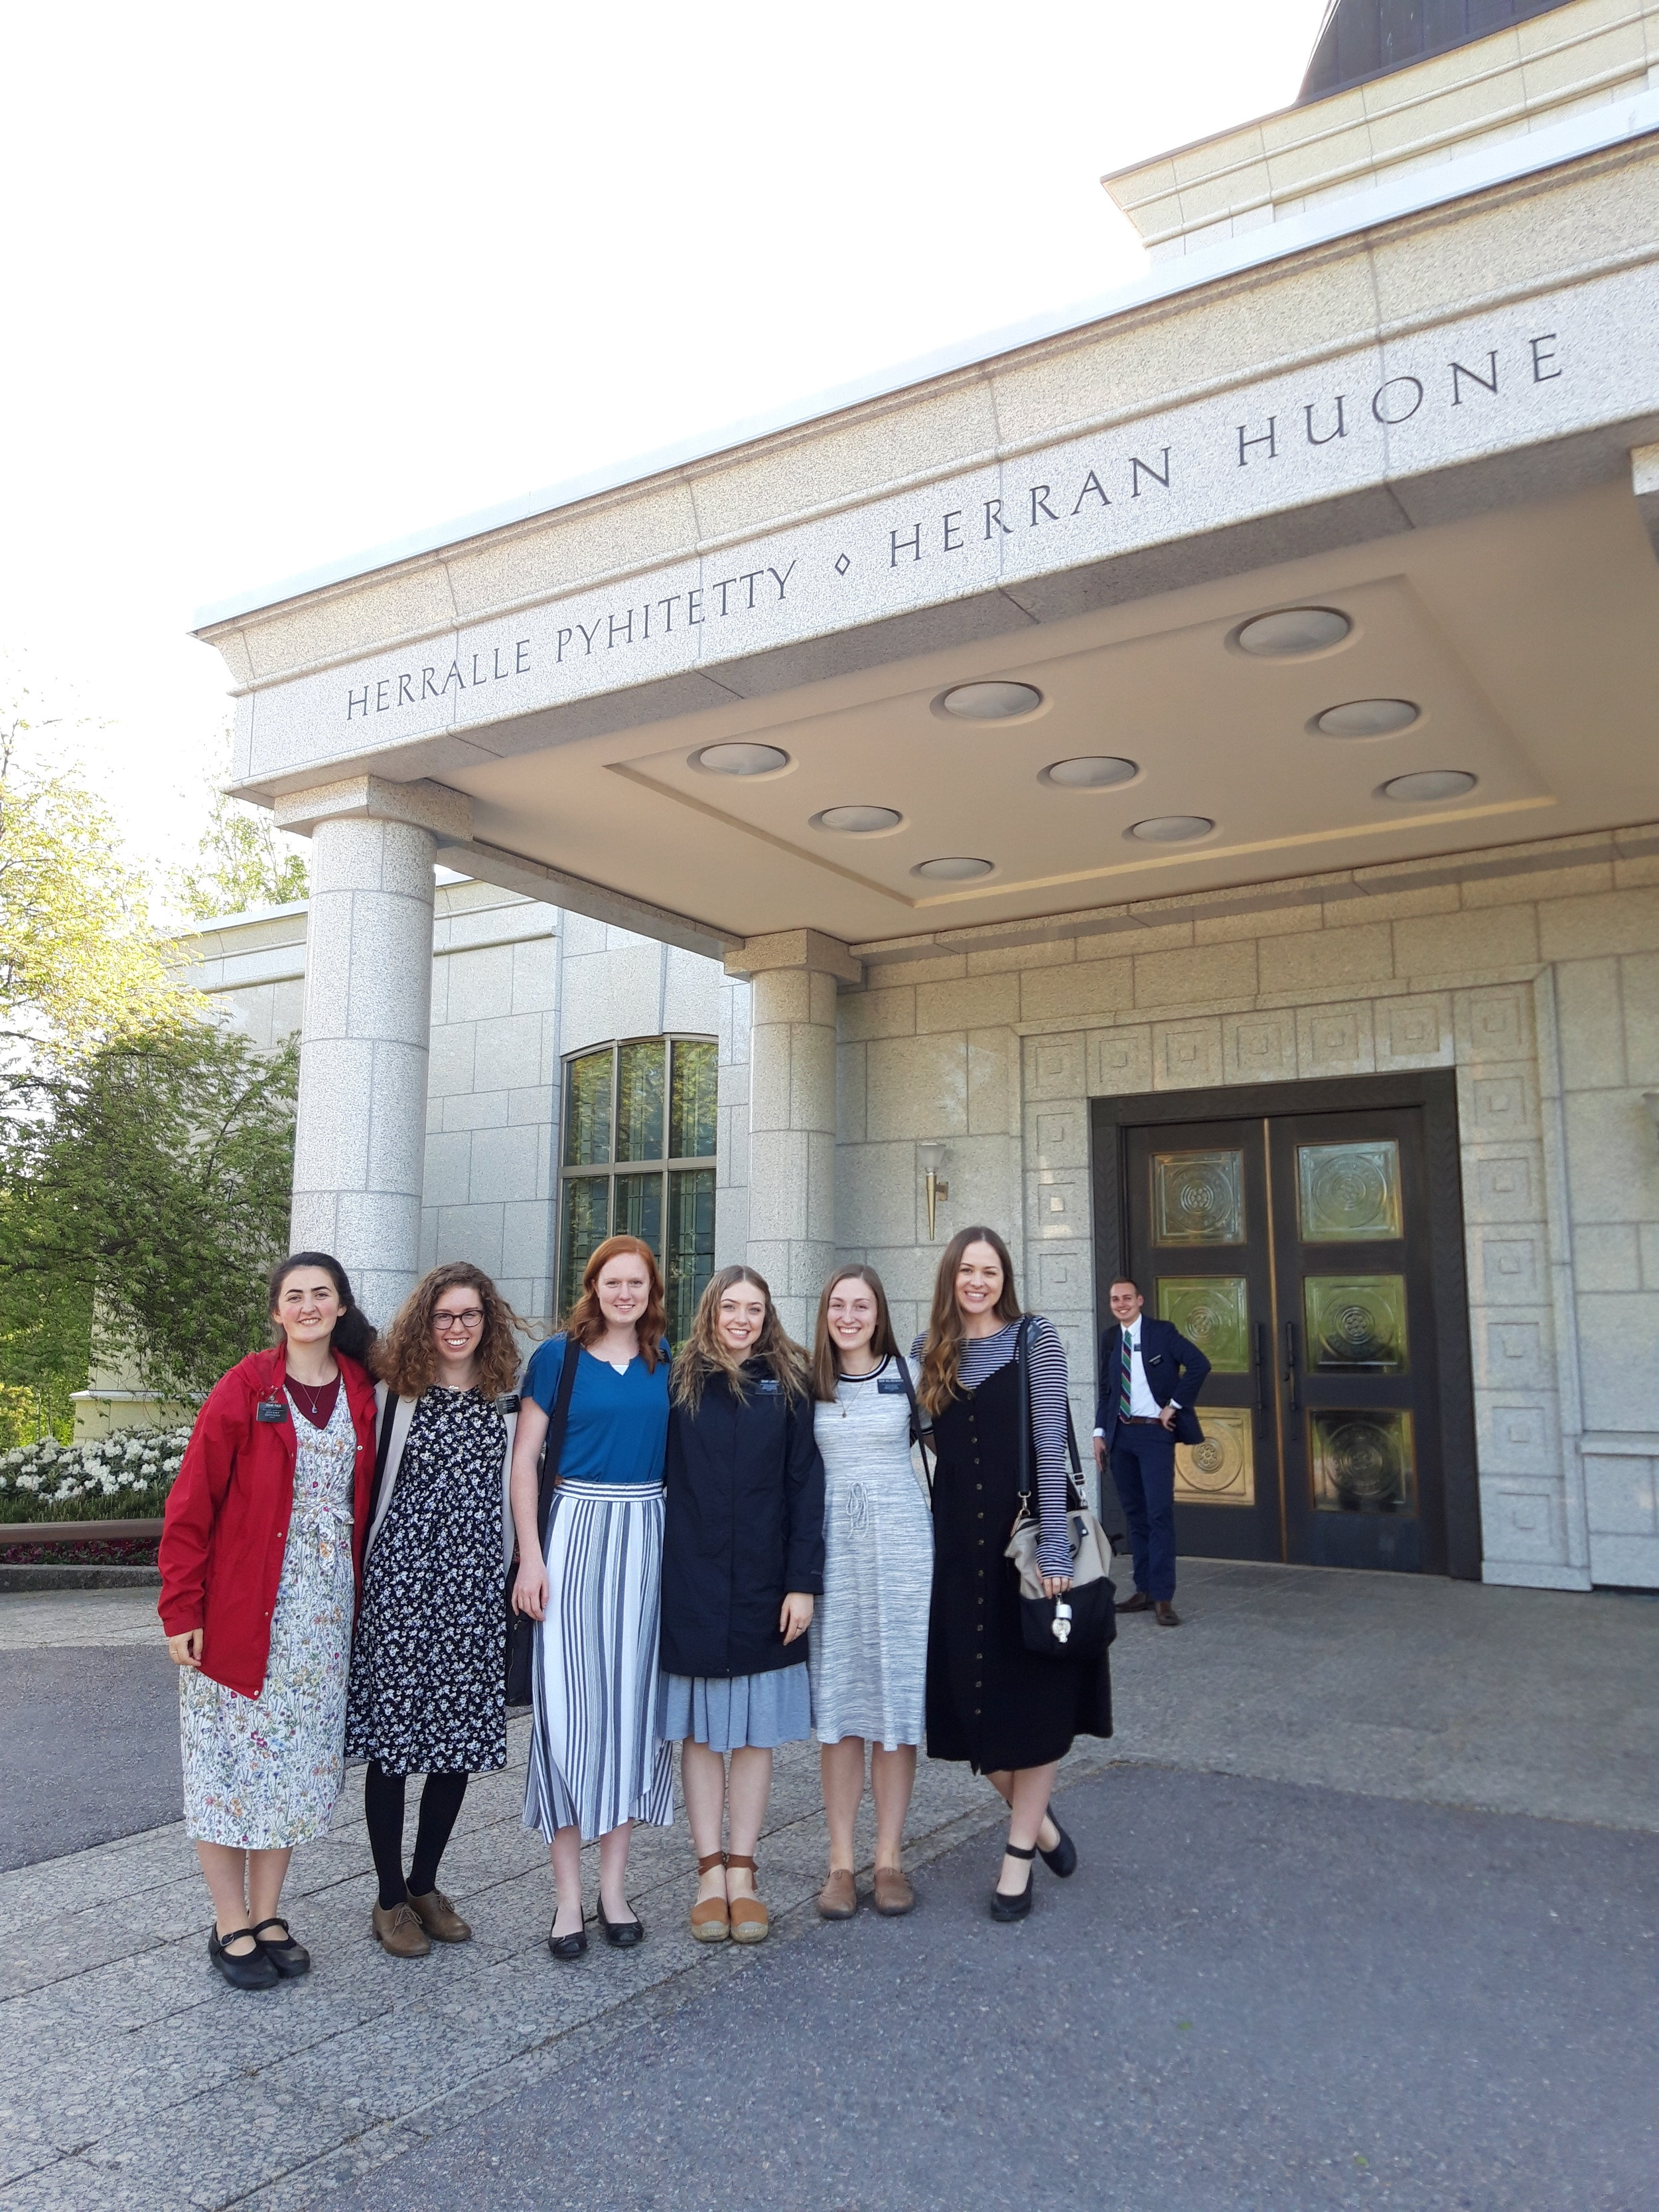 District pic from a few weeks ago at the Finland temple